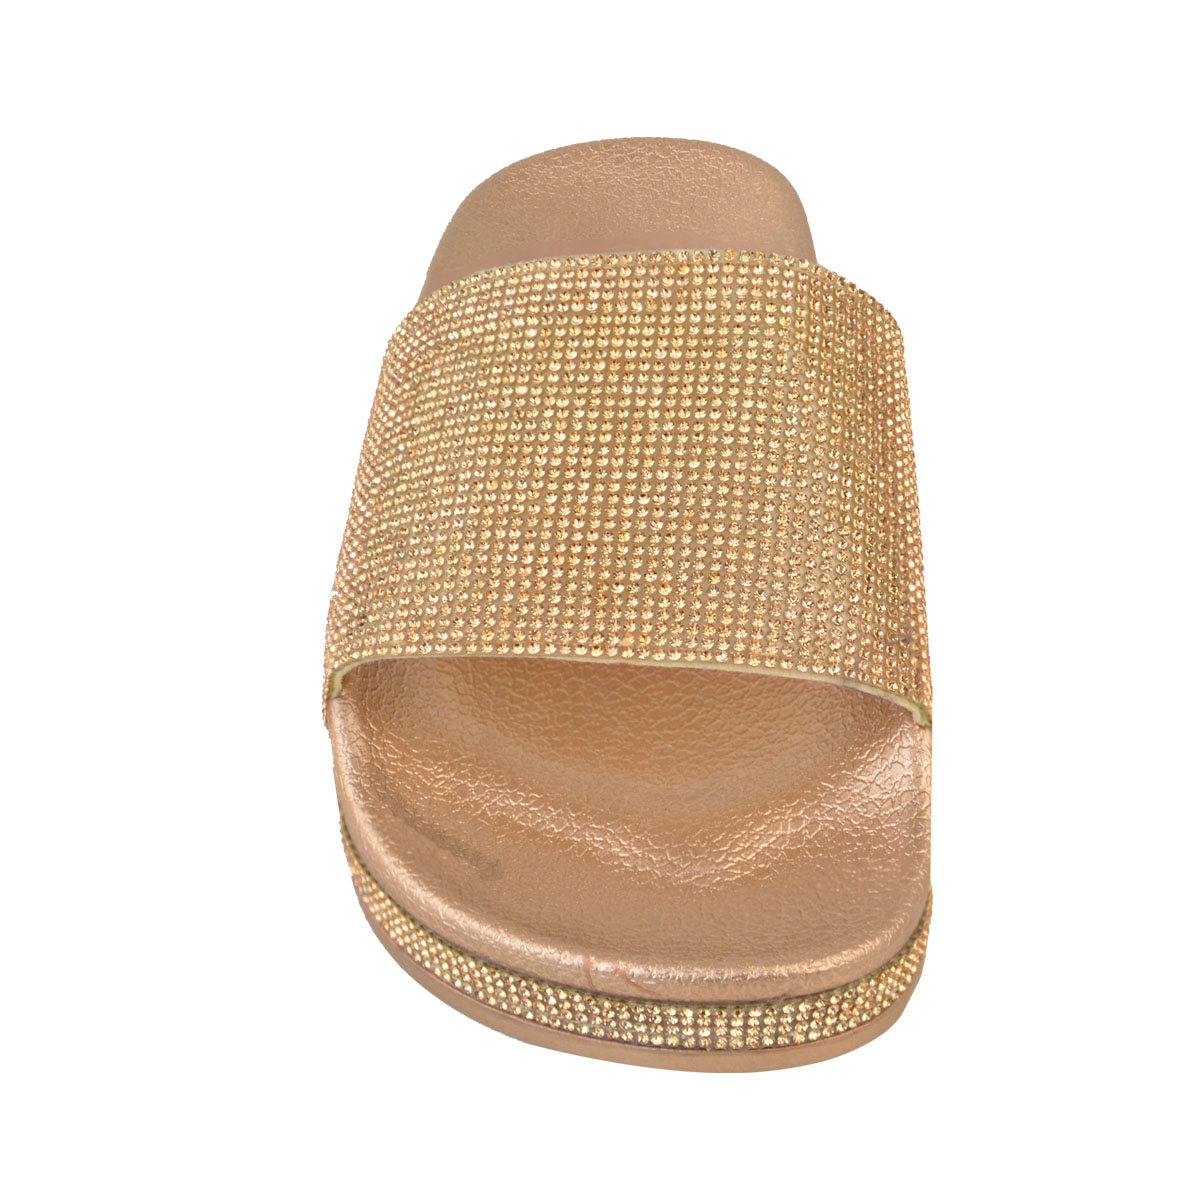 Womens-Ladies-Flat-Slides-Sandals-Diamante-Sparkly-Sliders-Slippers-Shoes-Size thumbnail 15